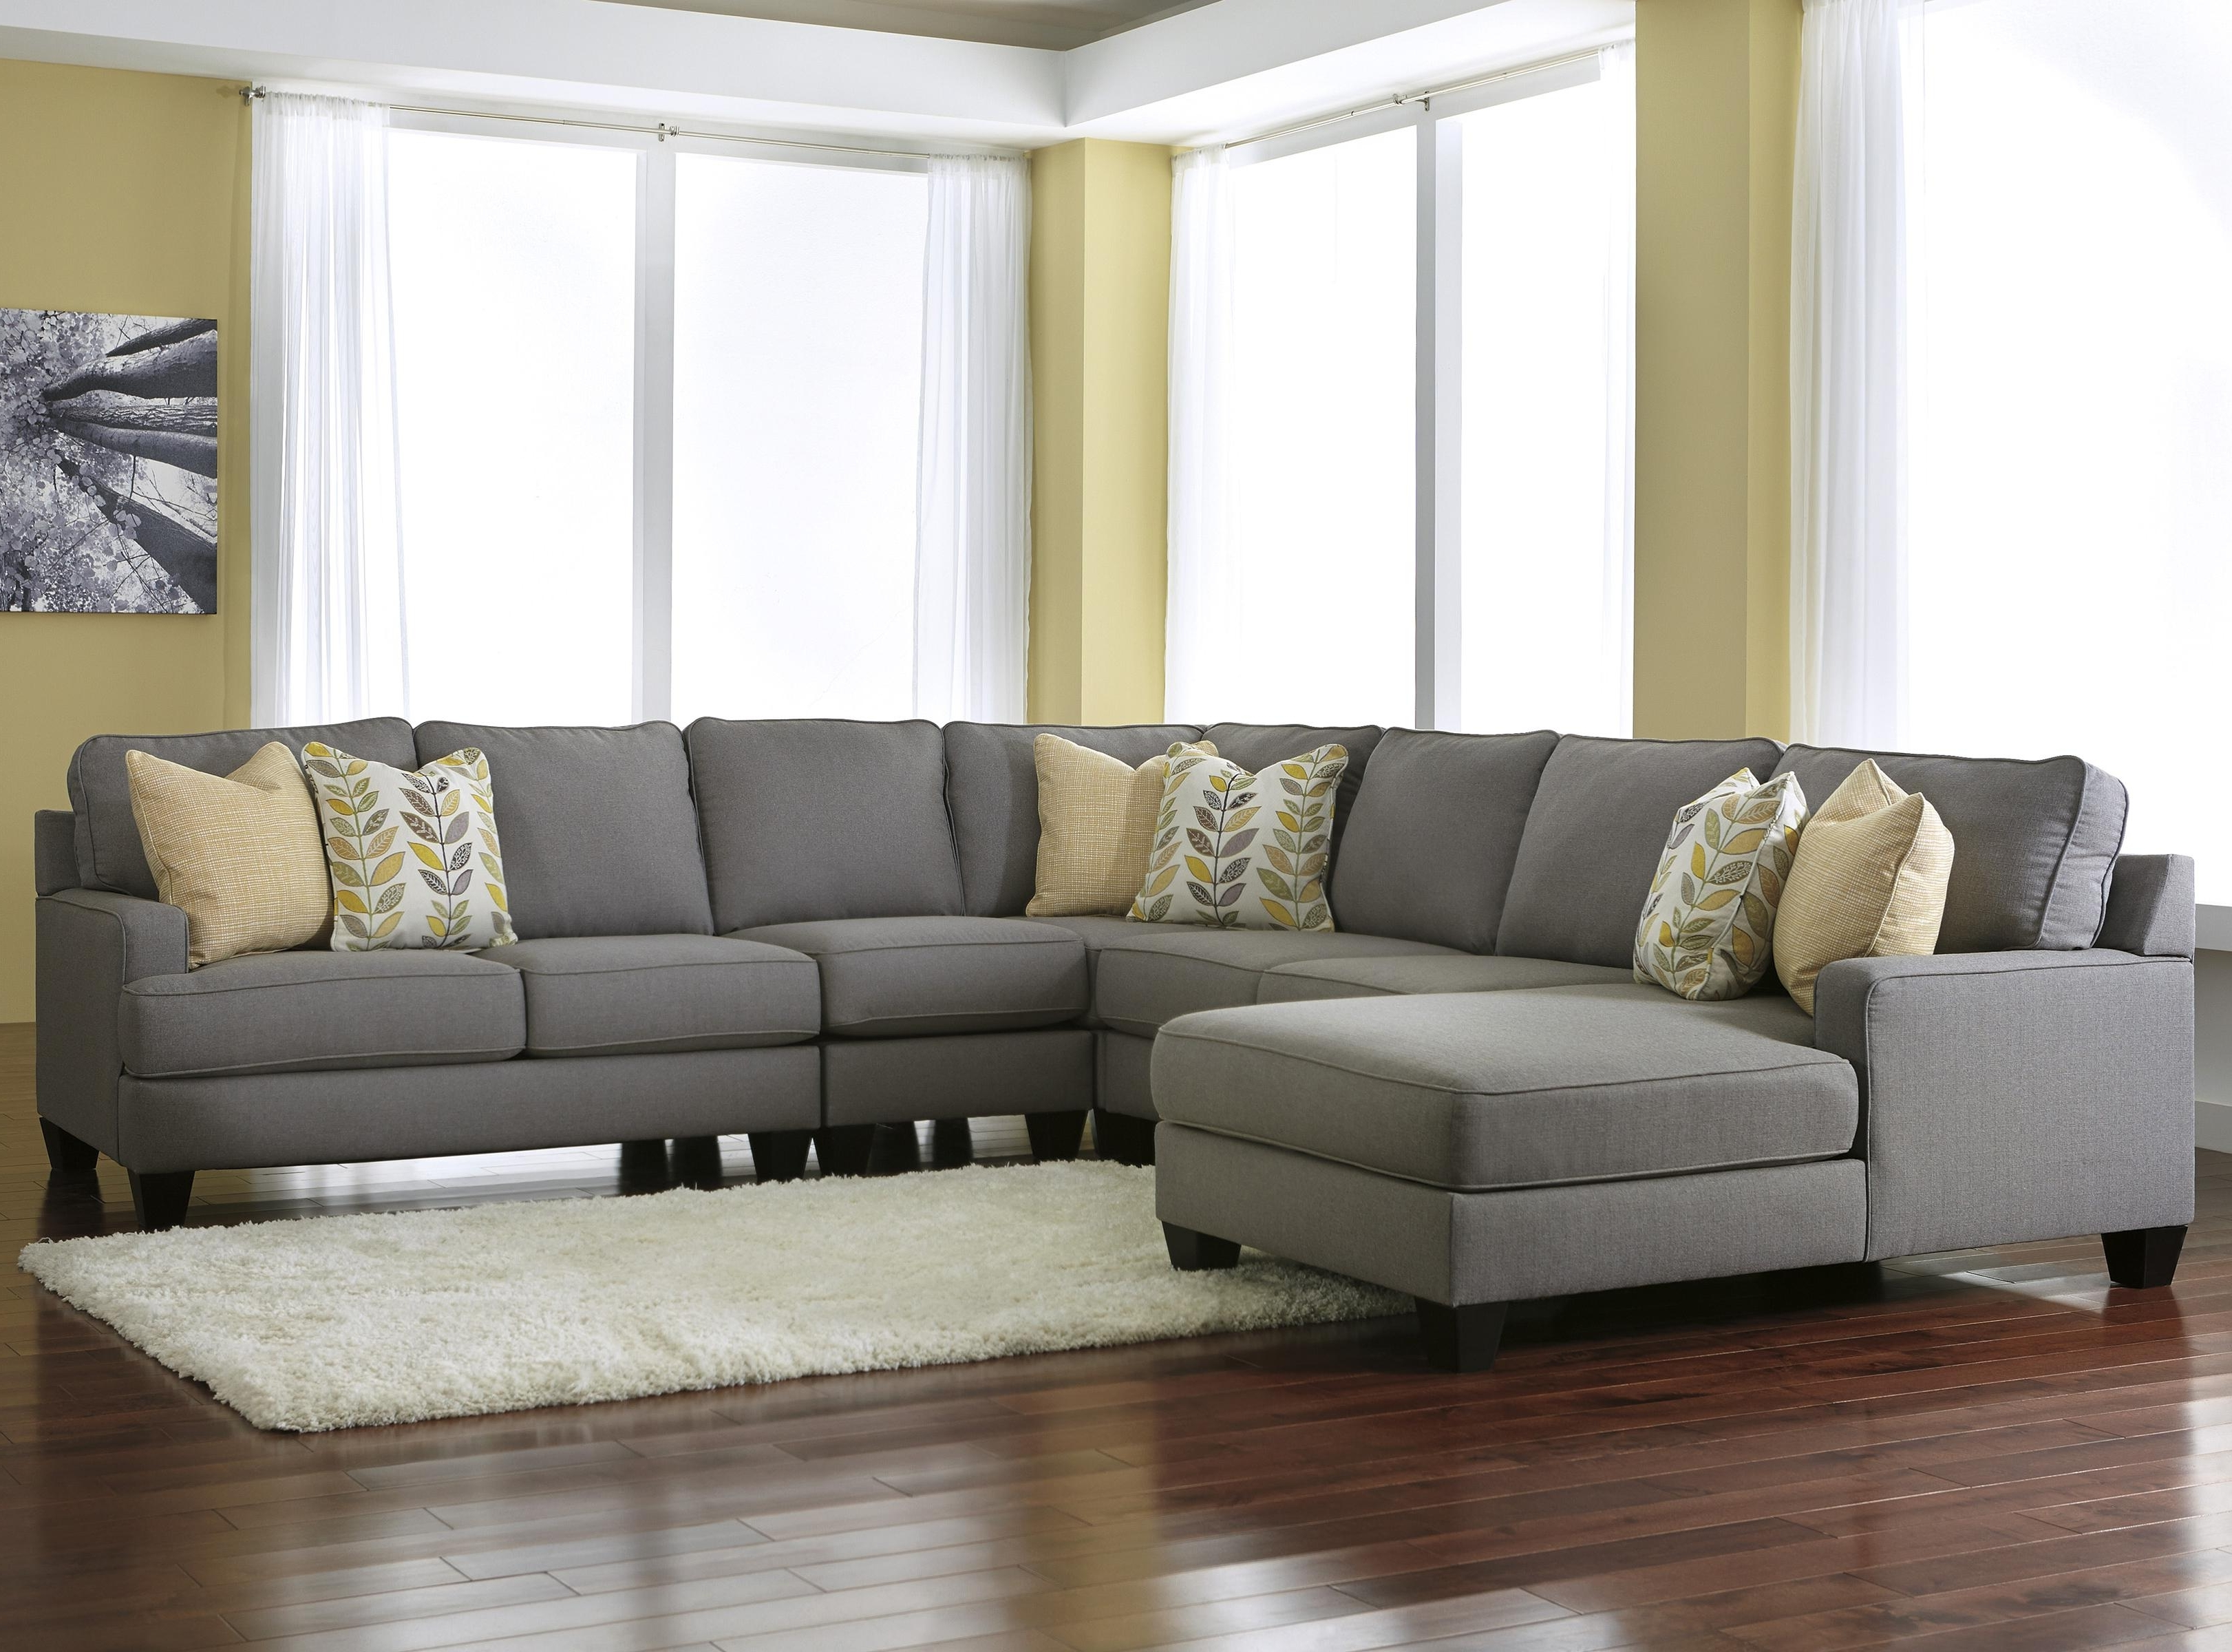 2019 Signature Designashley Chamberly – Alloy Modern 5 Piece In Peterborough Ontario Sectional Sofas (View 1 of 20)